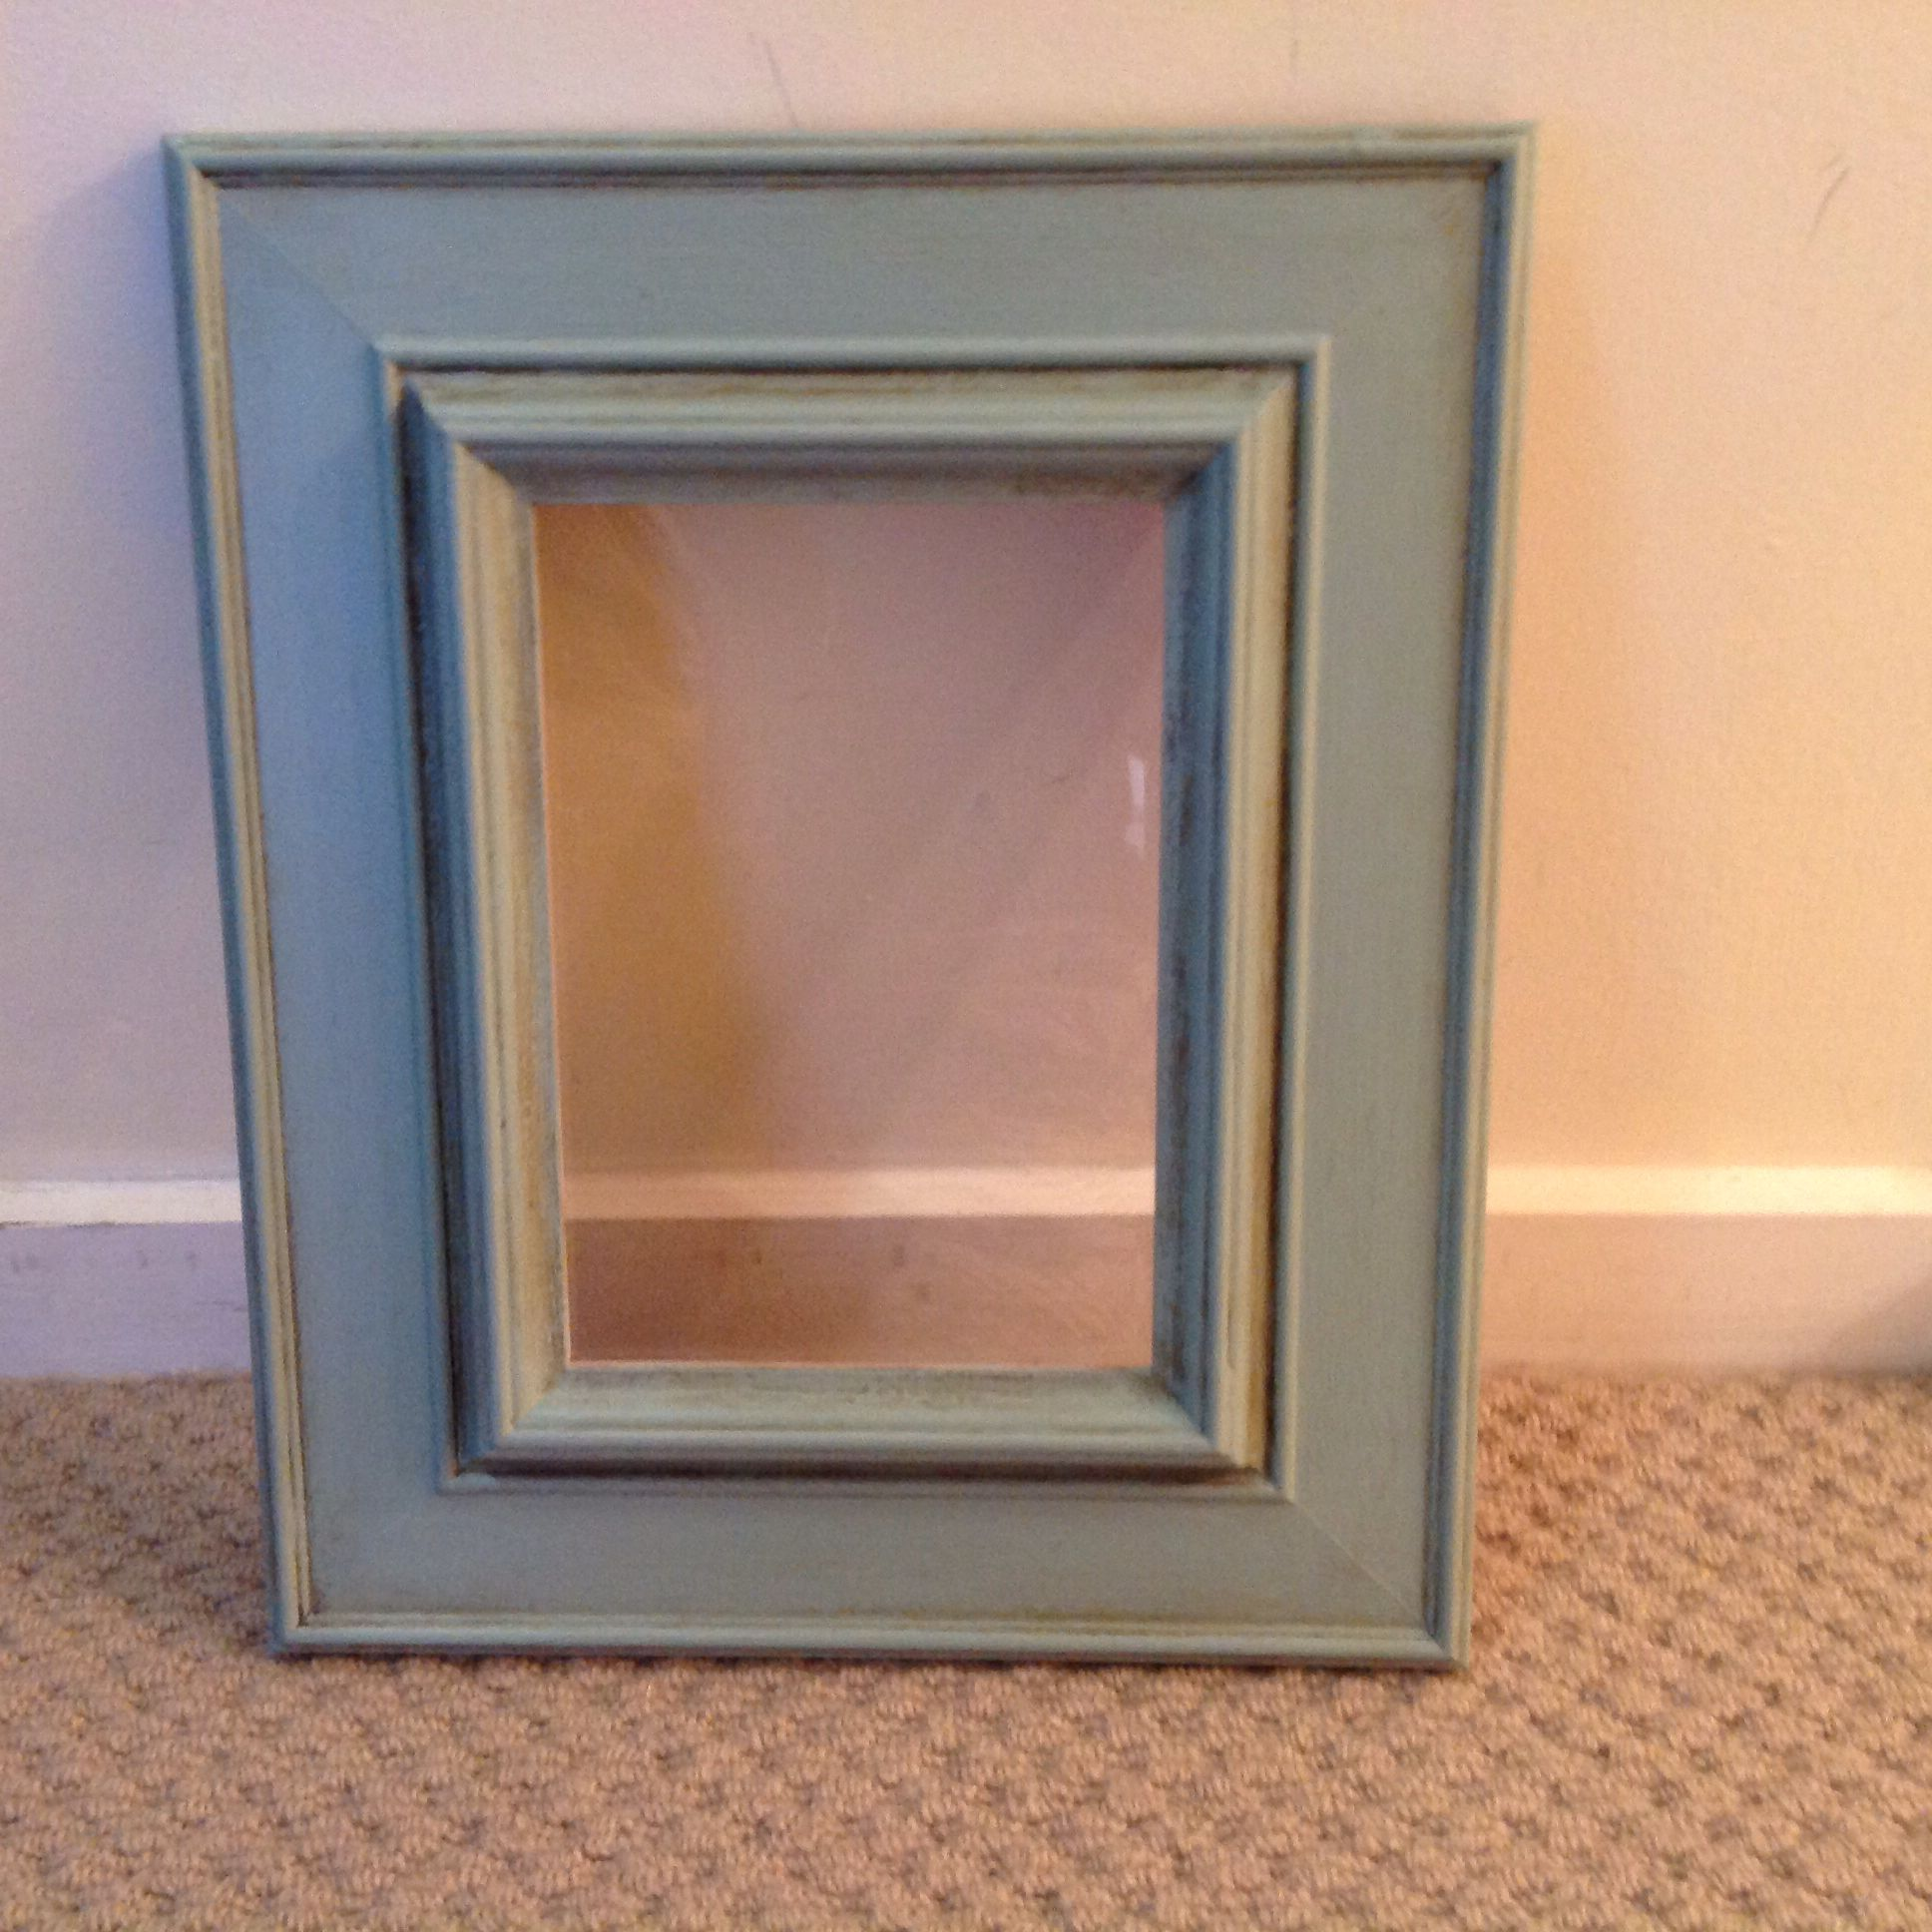 Frame with light application of dark wax.